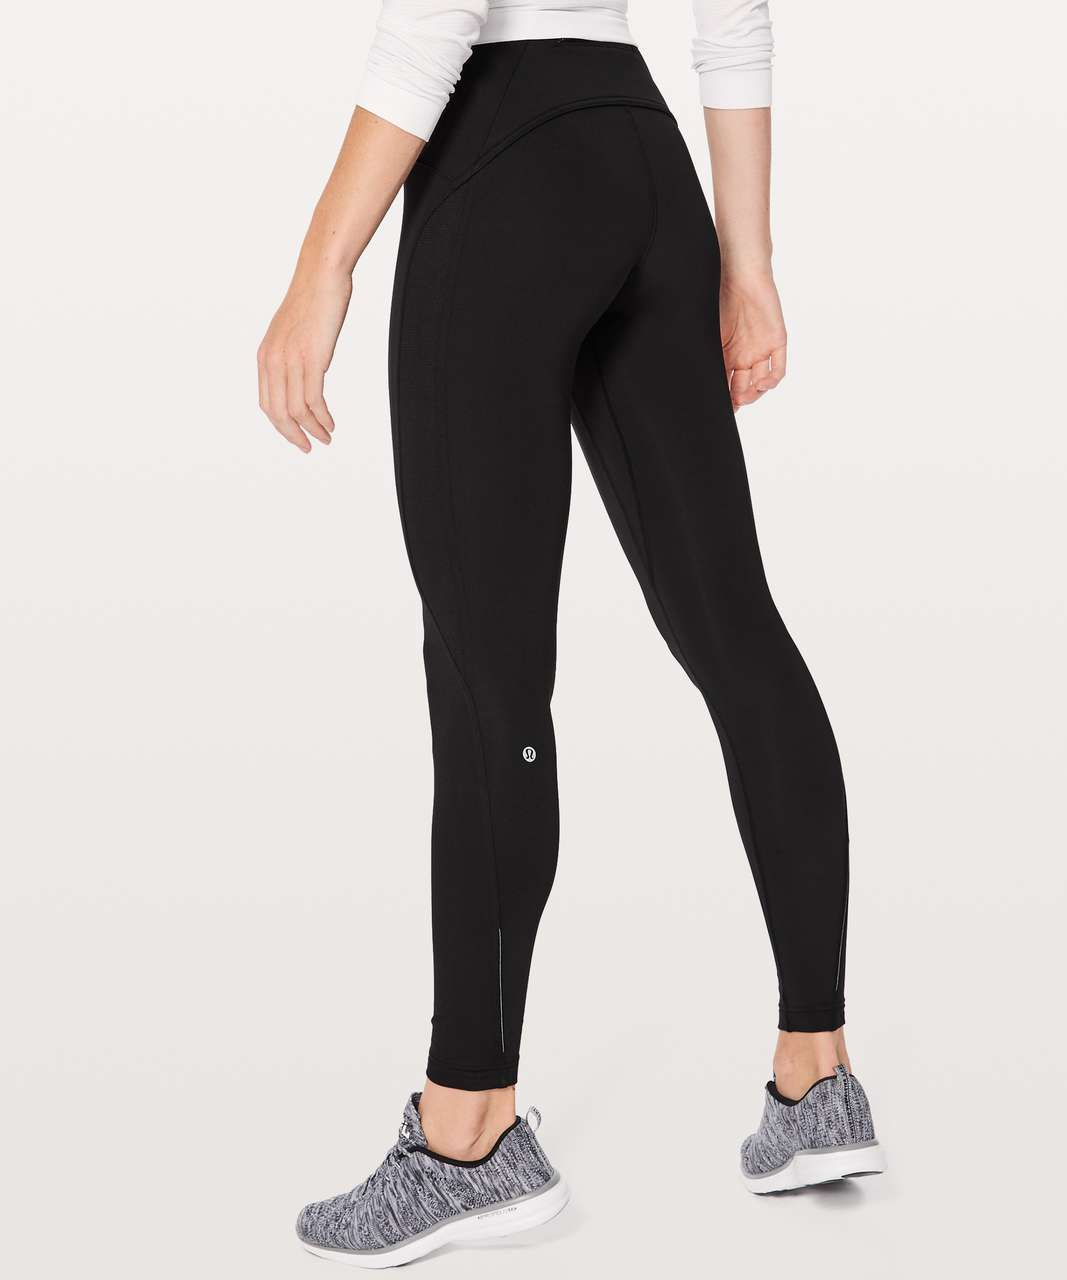 2431d2c2d06456 Color: black. With soft brushed Tech Fleece fabric, these high-rise run  tights will keep you cozy when you're dashing through snowy weather.